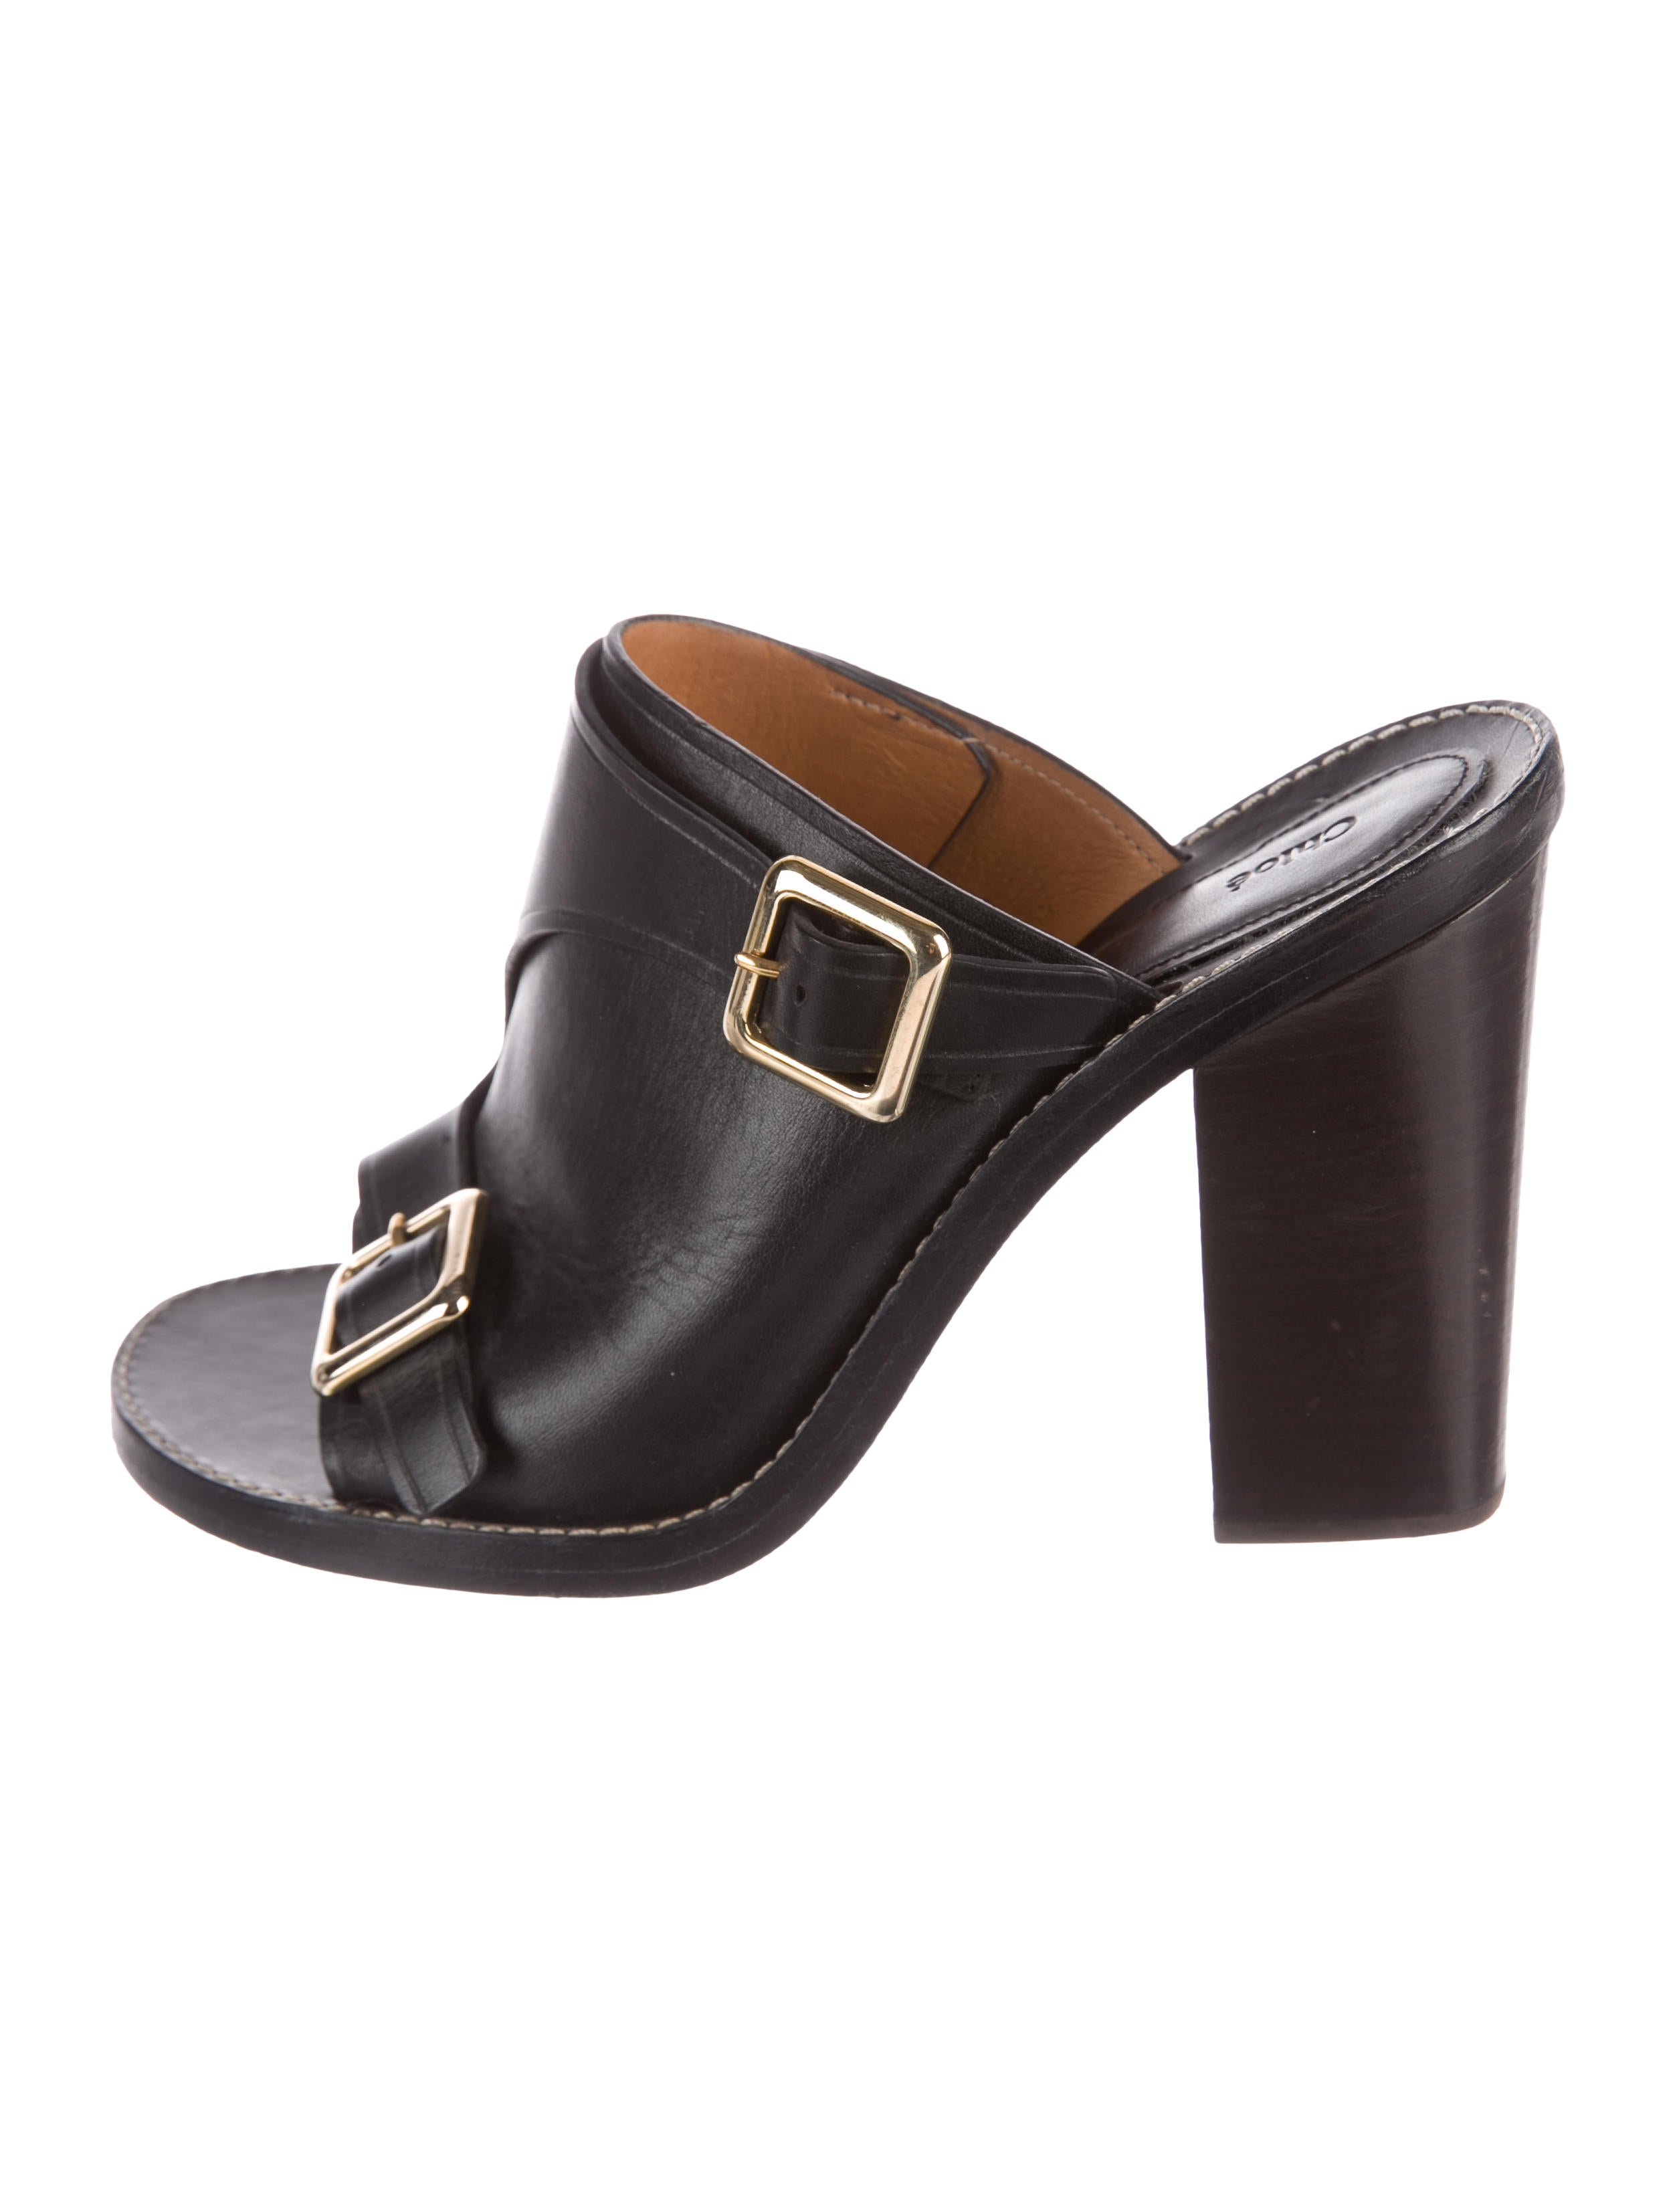 high quality sale online Chloé Leather Buckle-Accented Mules footlocker pictures online cheap sale the cheapest perfect online buy cheap professional JZOy5QHuu7